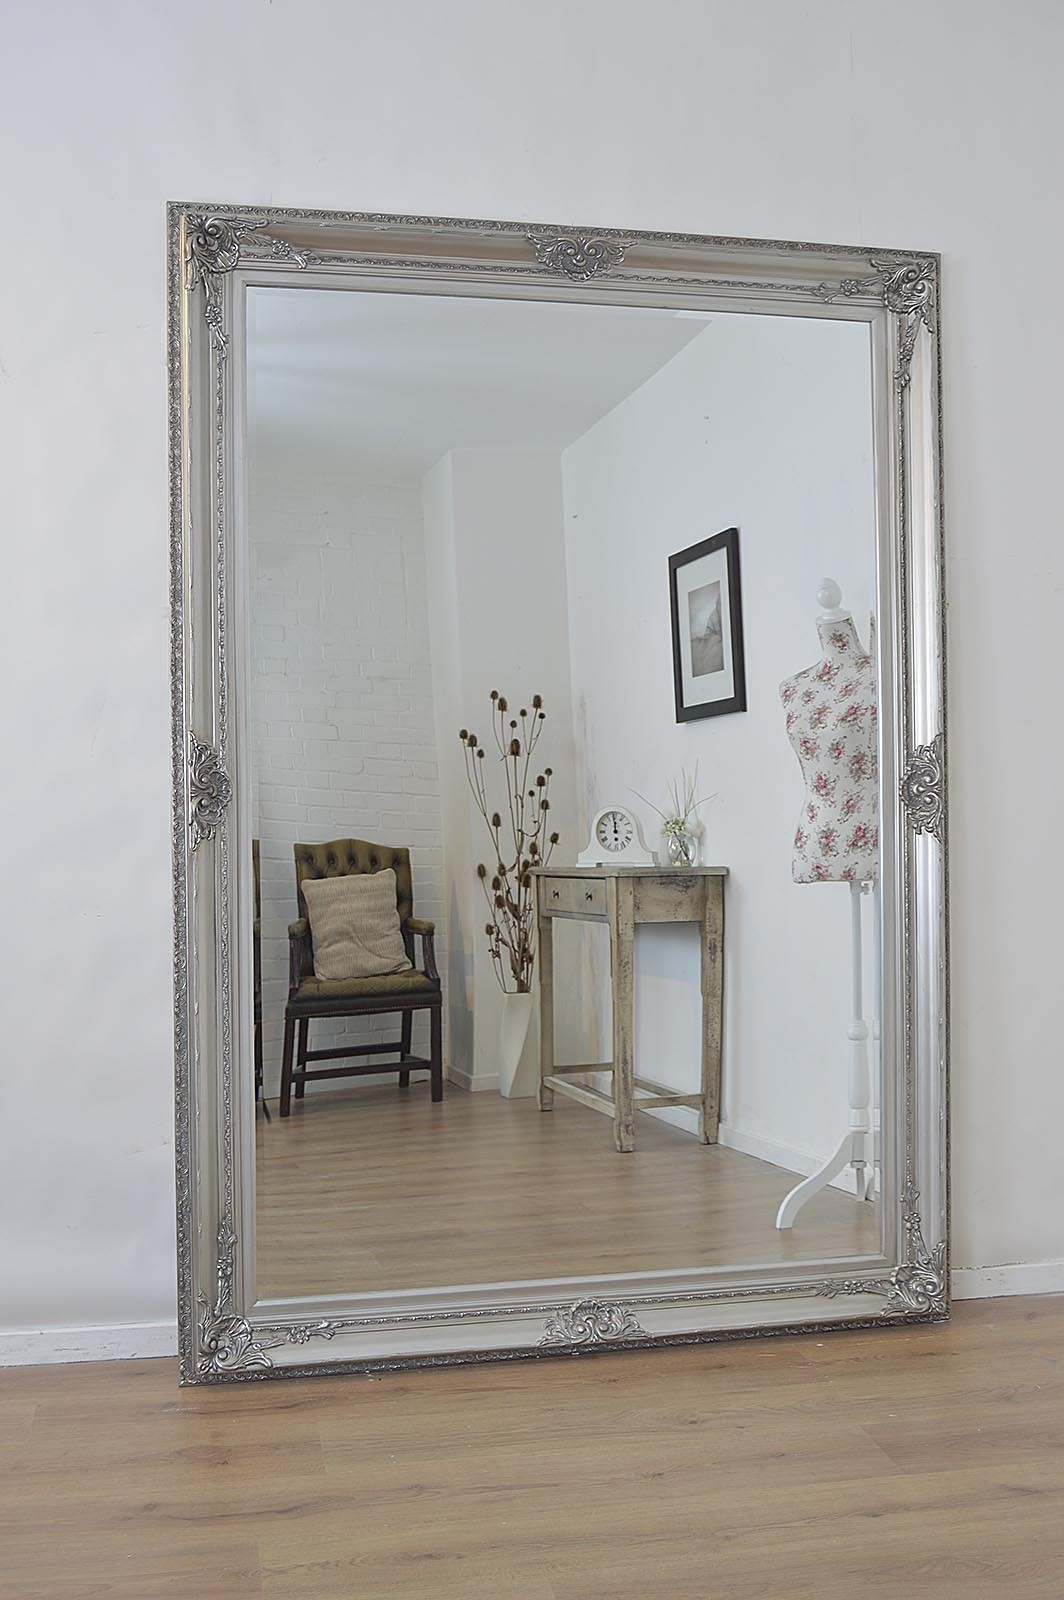 Wall Mirrors Large Wall Shelves Within Free Standing Mirrors For Sale (Image 15 of 15)